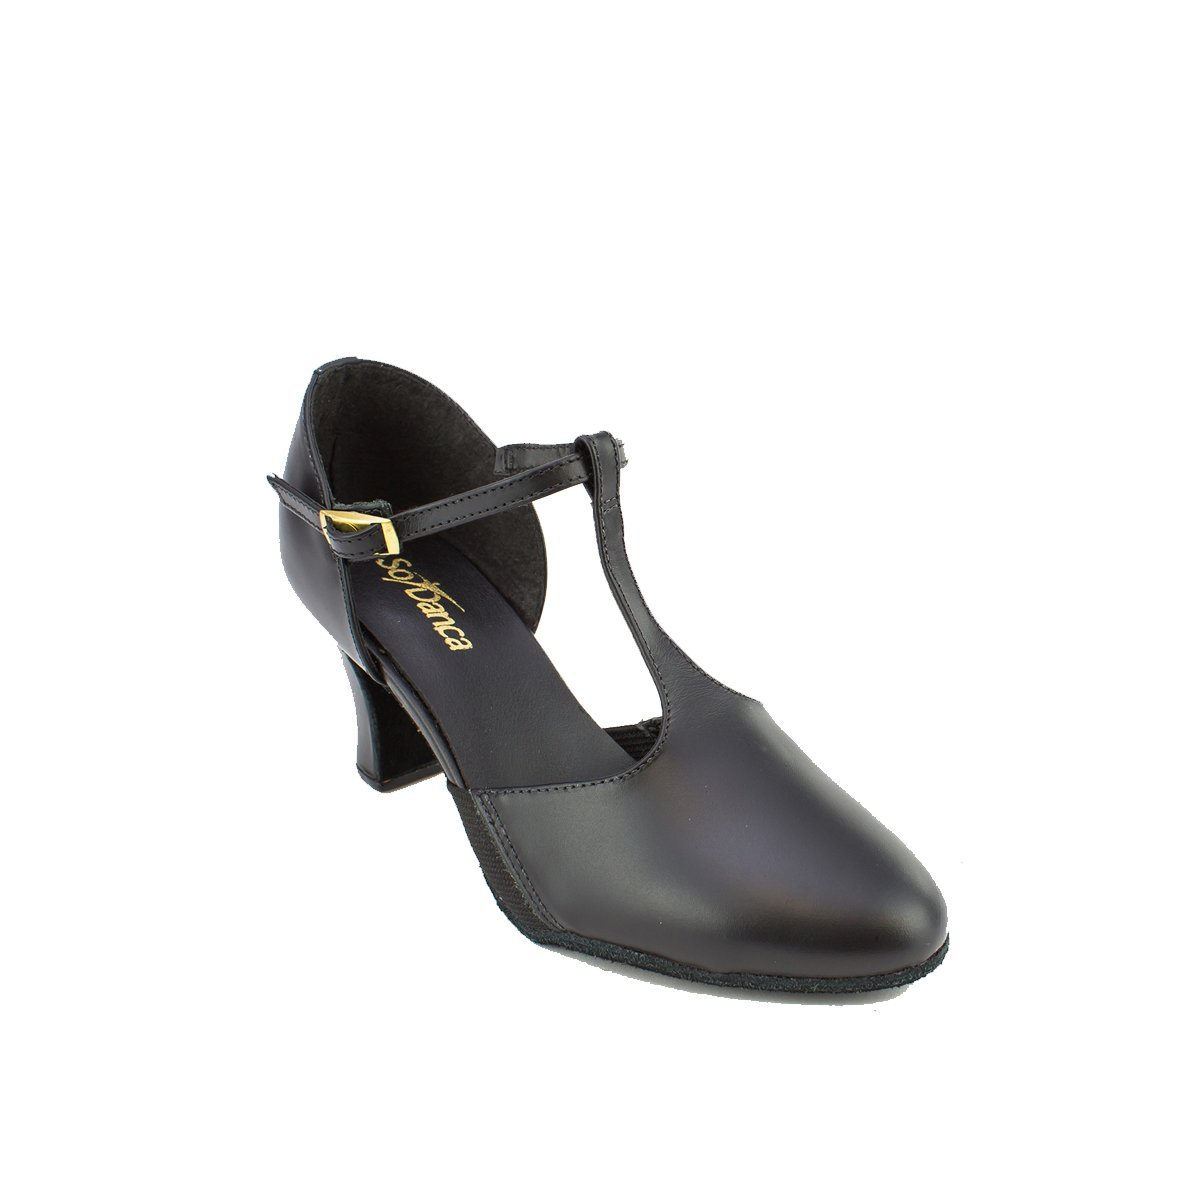 Sodanca Ch-57 Connie 2.5 Heel T Strap Character Shoe